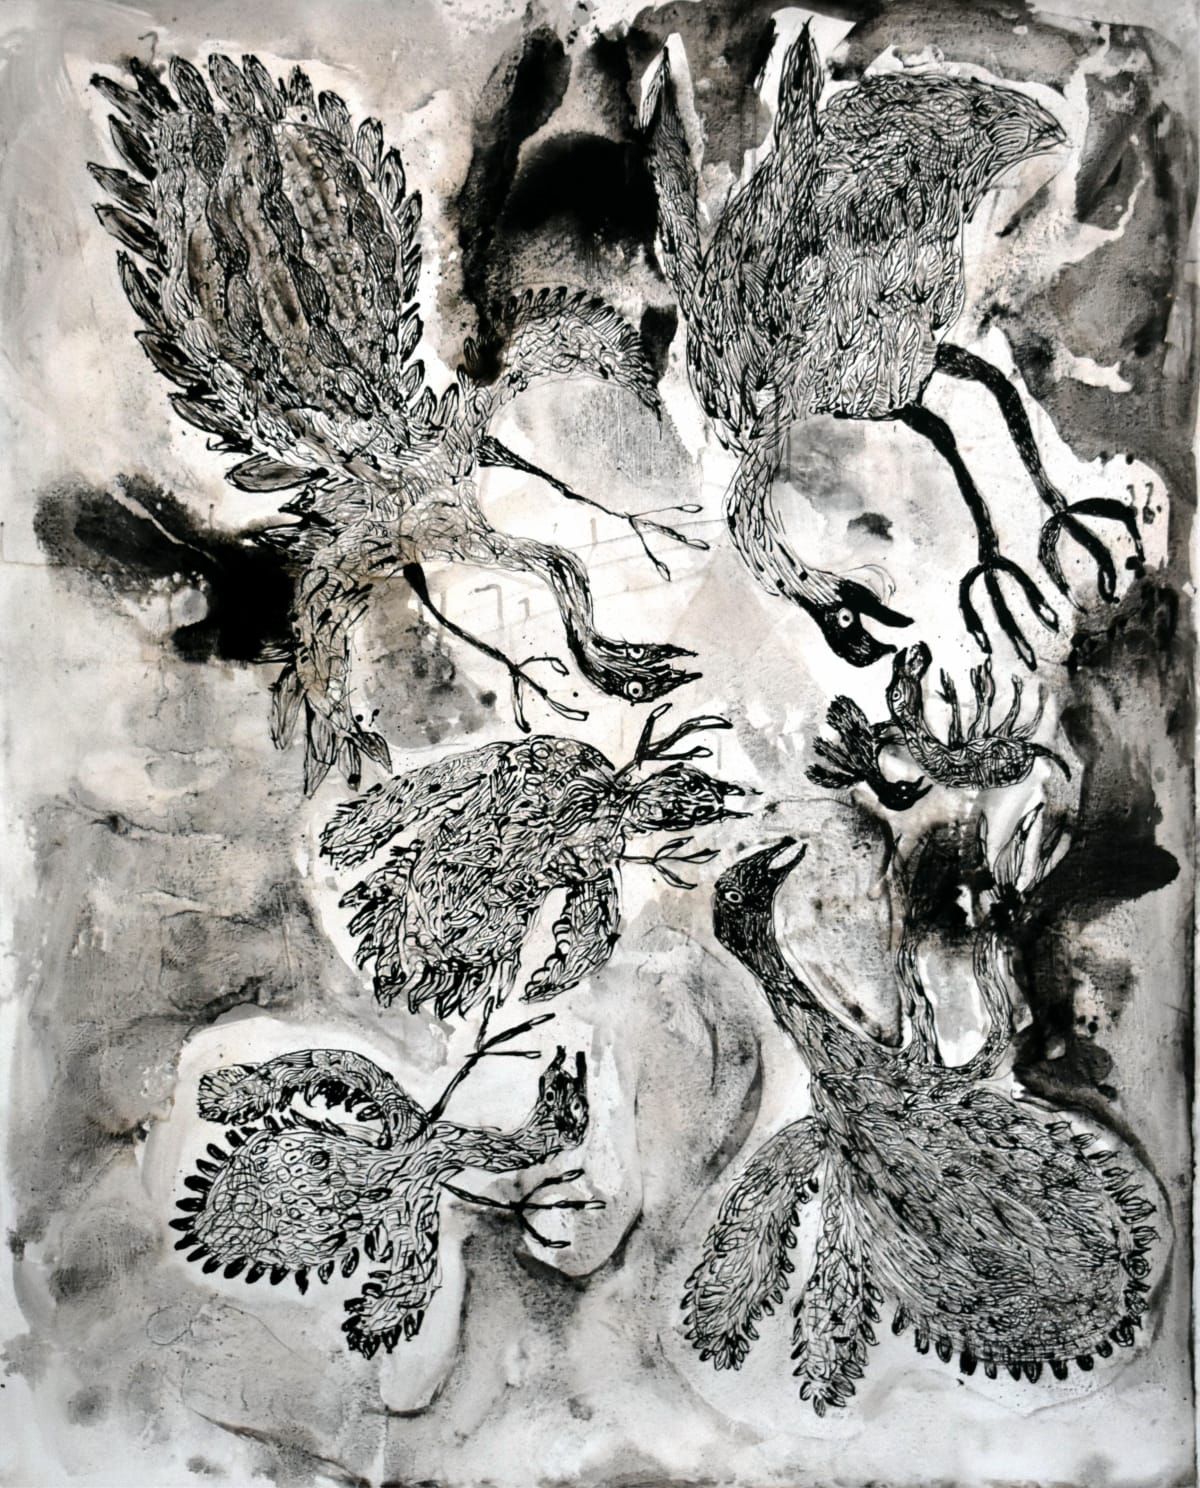 Iluwanti Ken Walawulu ngunytju kukaku ananyi (Mother Eagles going hunting) Acrylic on Linen 1525x1220mm